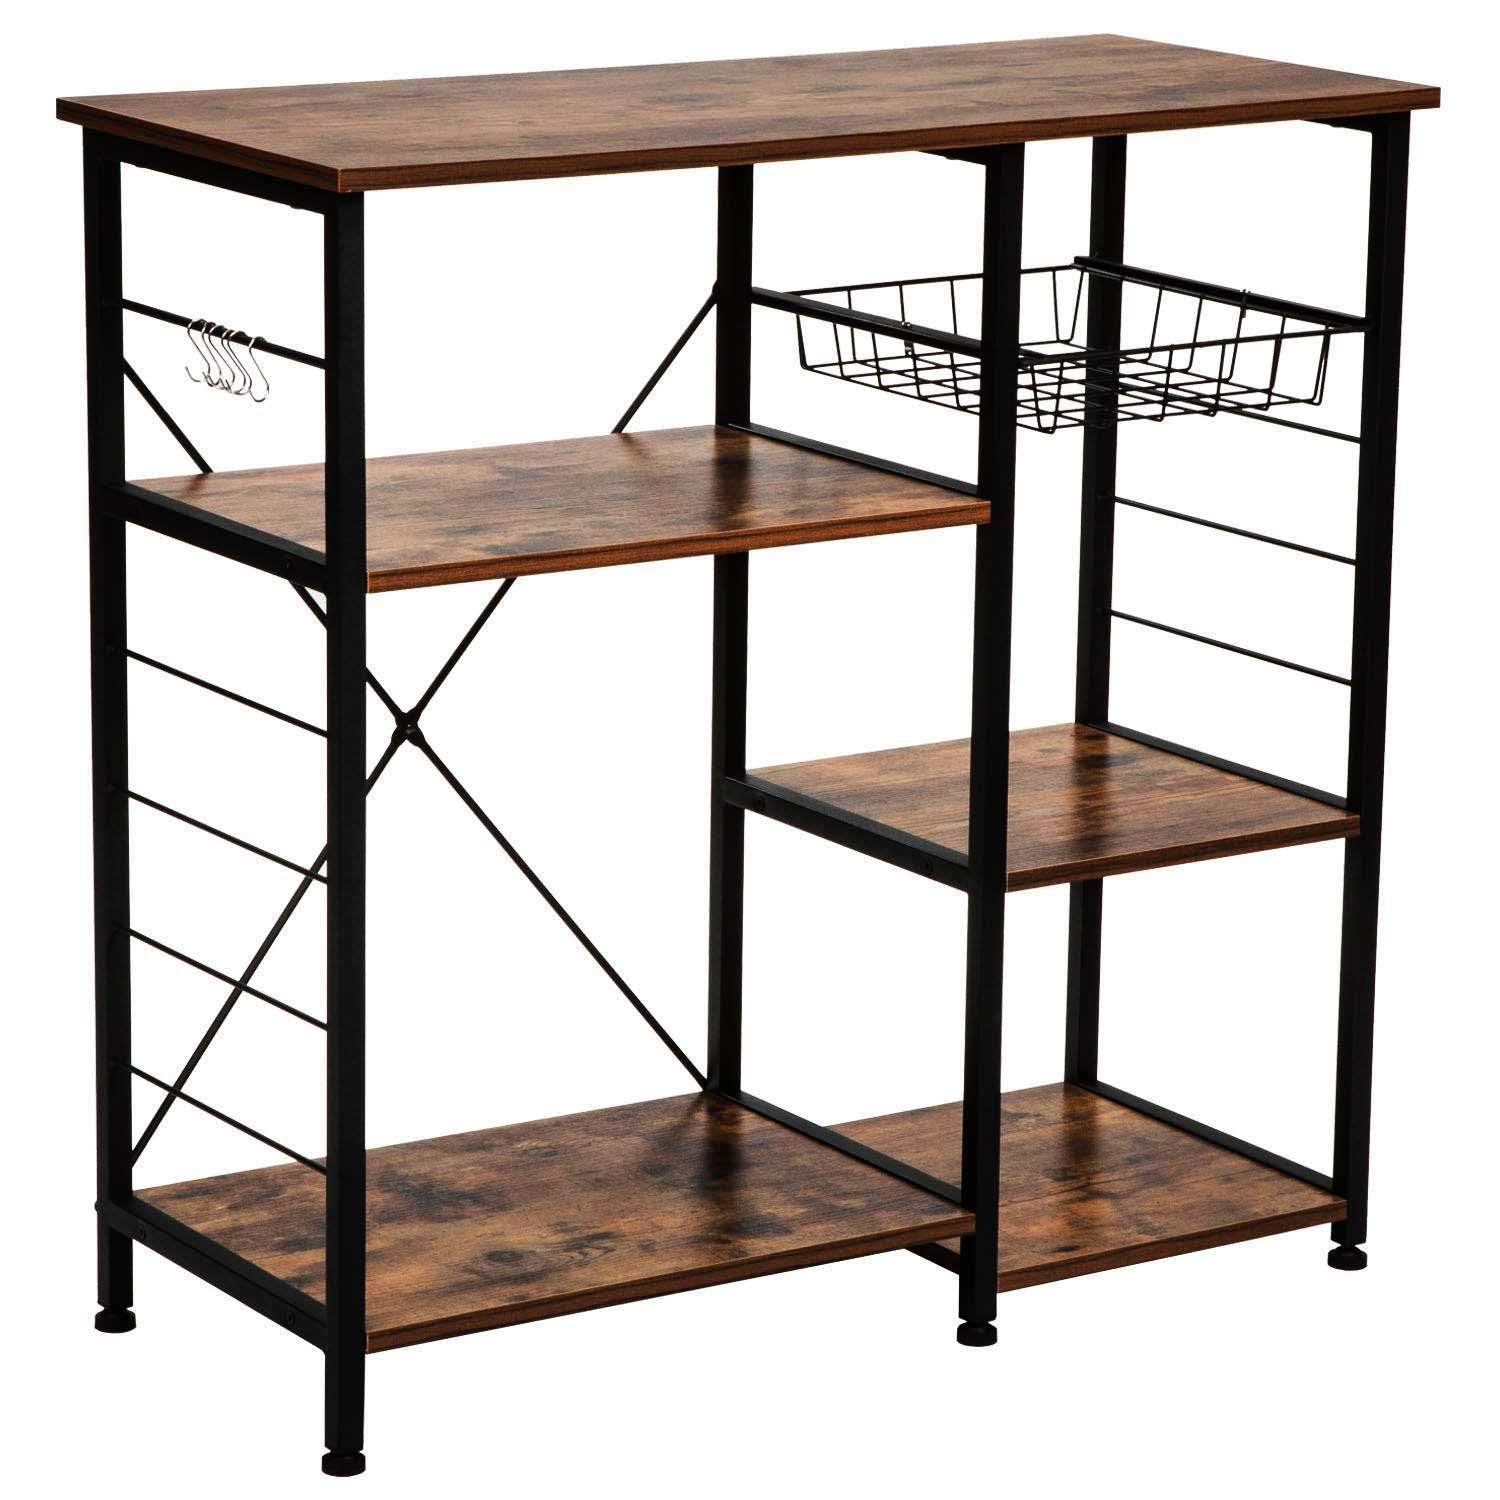 IRONCK Industrial Kitchen Baker's Rack, Kitchen Island Utility Storage Shelf, Microwave Stand with 6 Hooks, Metal Frame, Simple Assembly, Vintage Brown by IRONCK